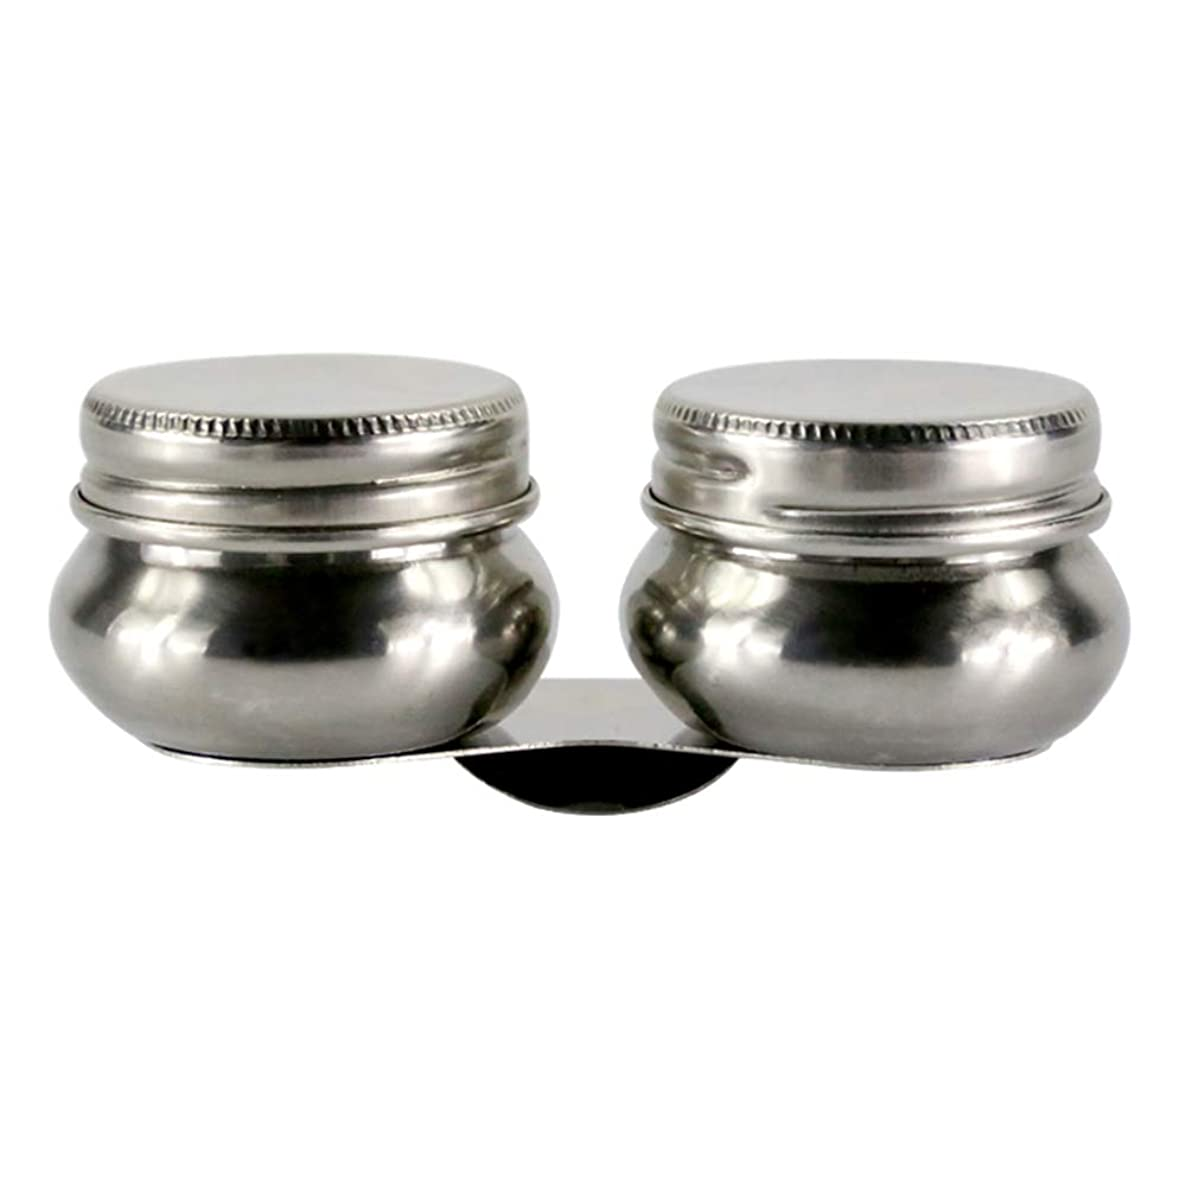 Looneng Double Dipper Palette Cup with Screw Lid and Clip